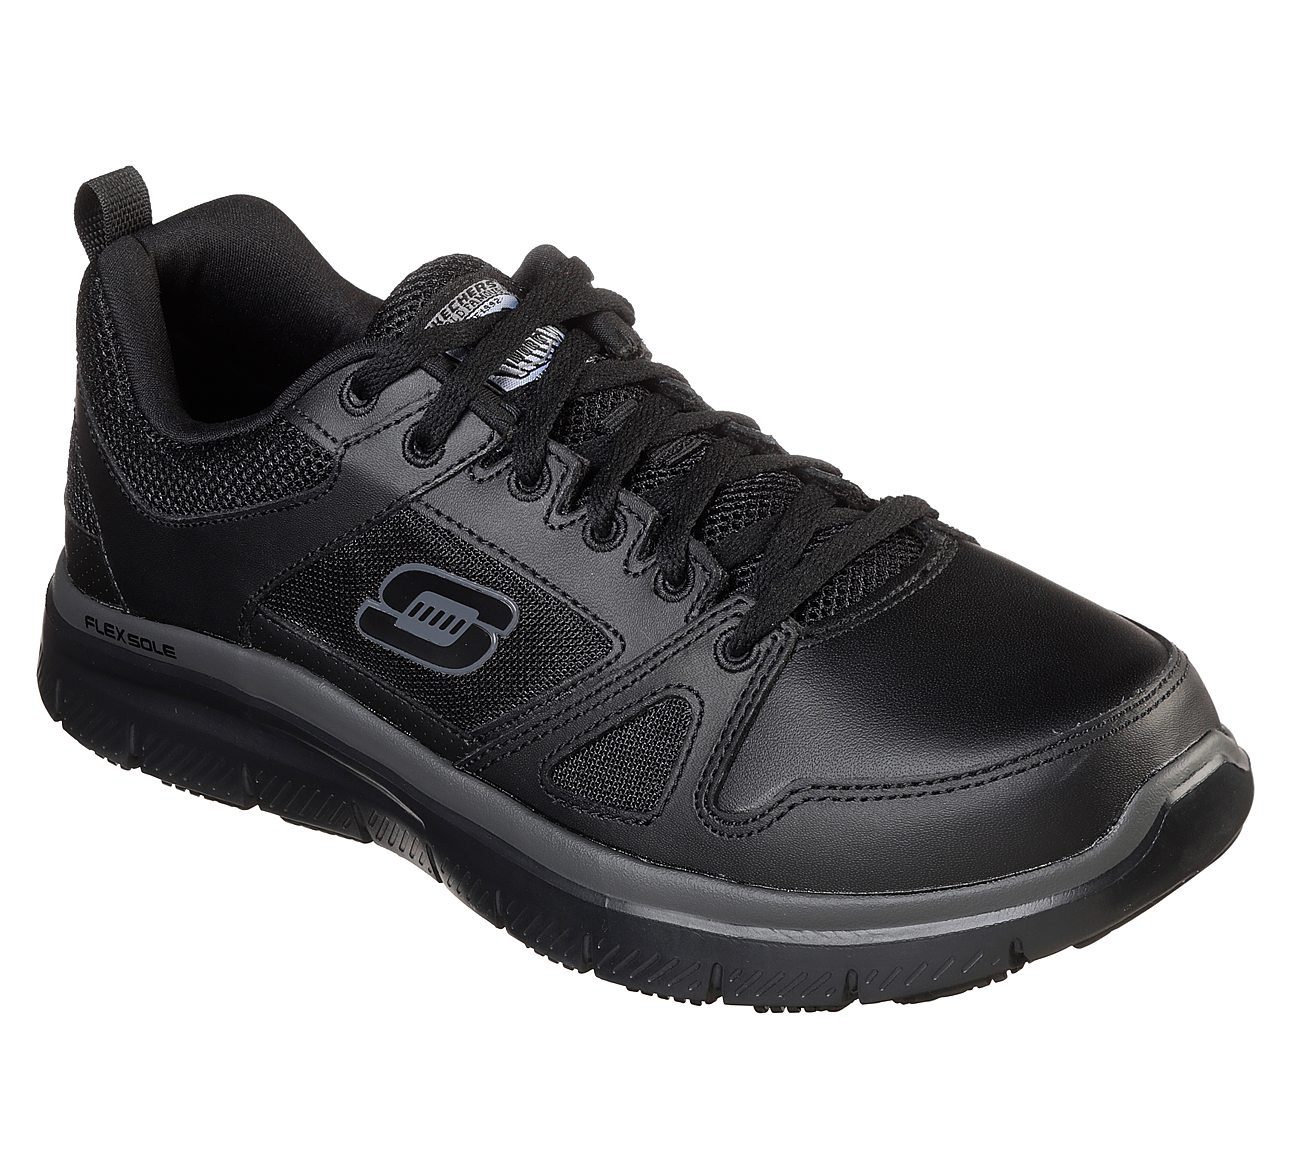 6c158ed6c374 Buy SKECHERS Work Relaxed Fit  Flex Advantage SR Work Shoes only  75.00